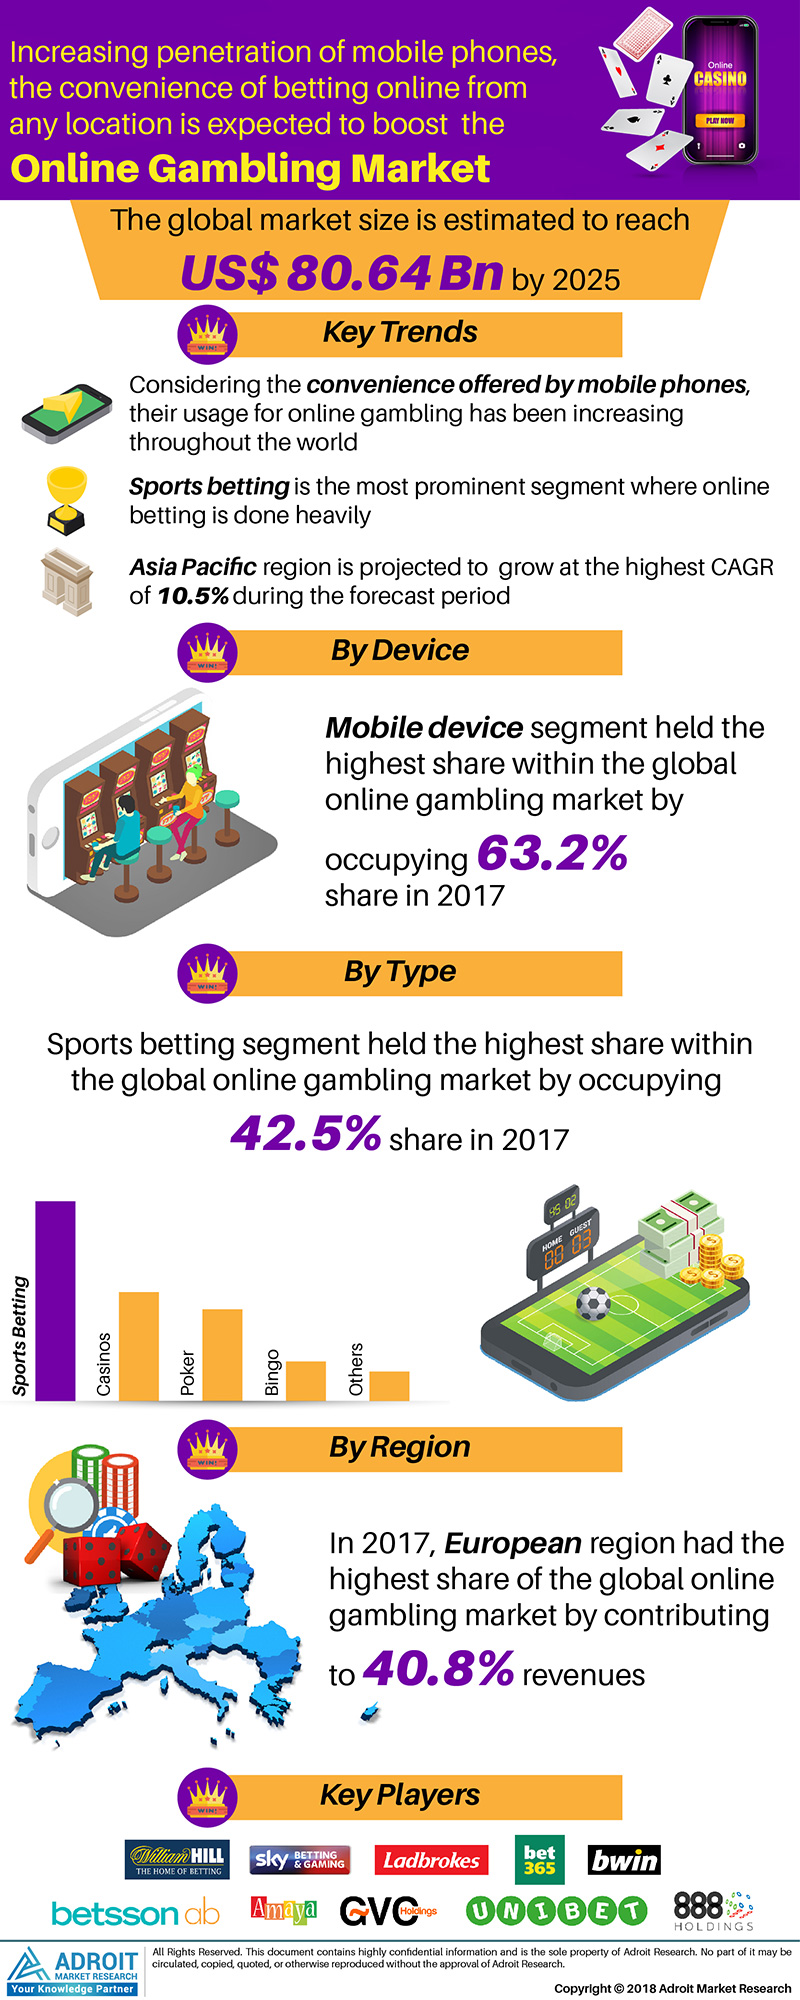 Global Online Gambling Market Size 2017 By Type, Device, Region and Forecast 2018 to 2025